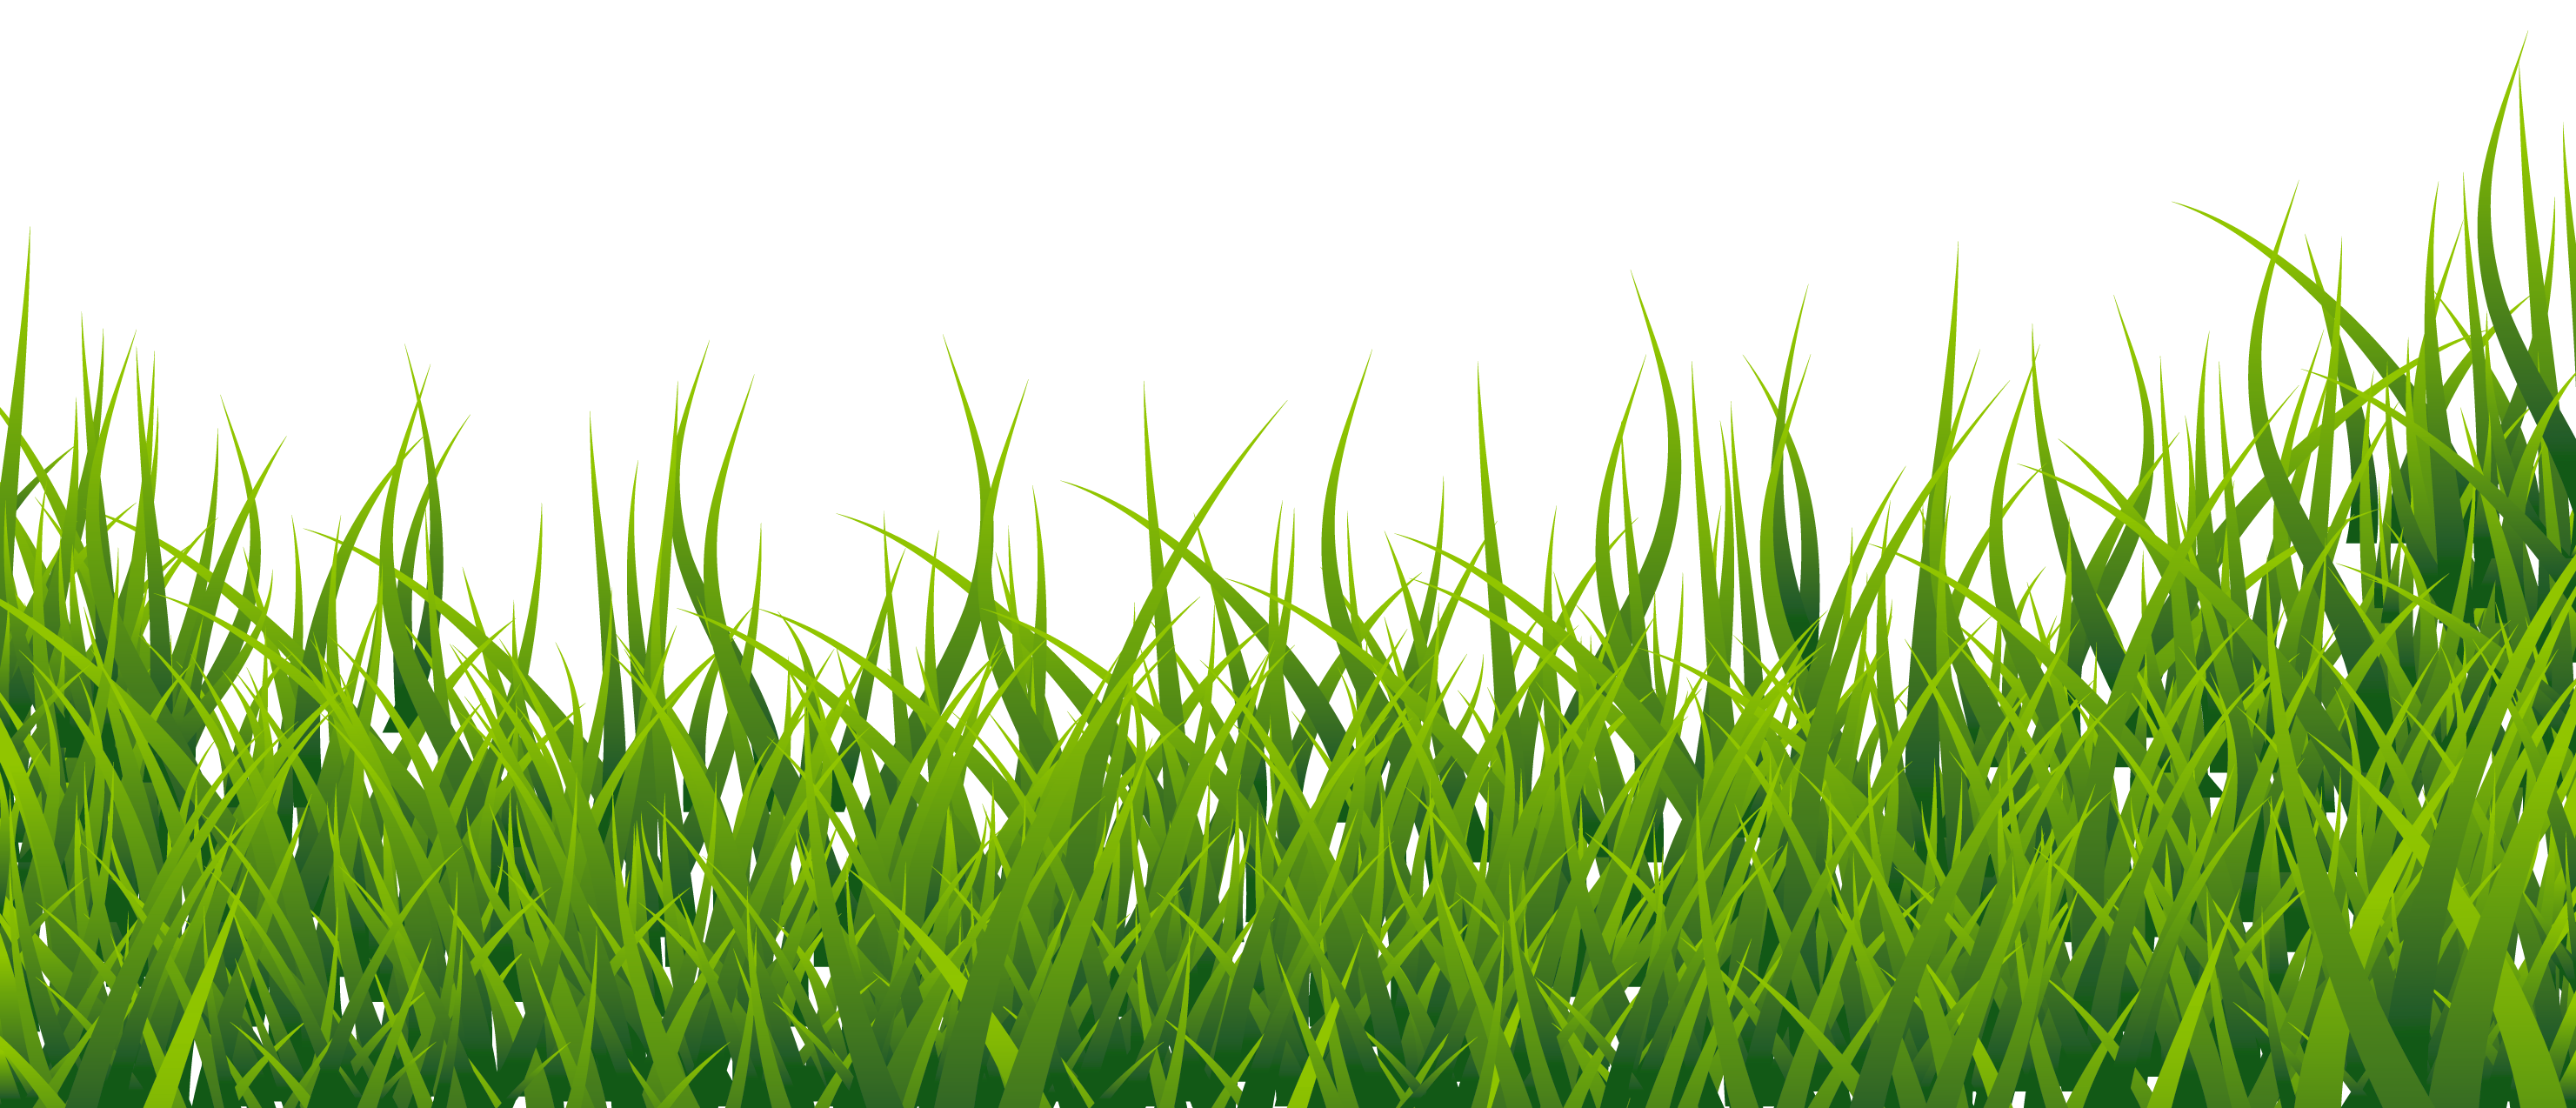 jpg free stock Picture gallery yopriceville high. Free grass clipart border